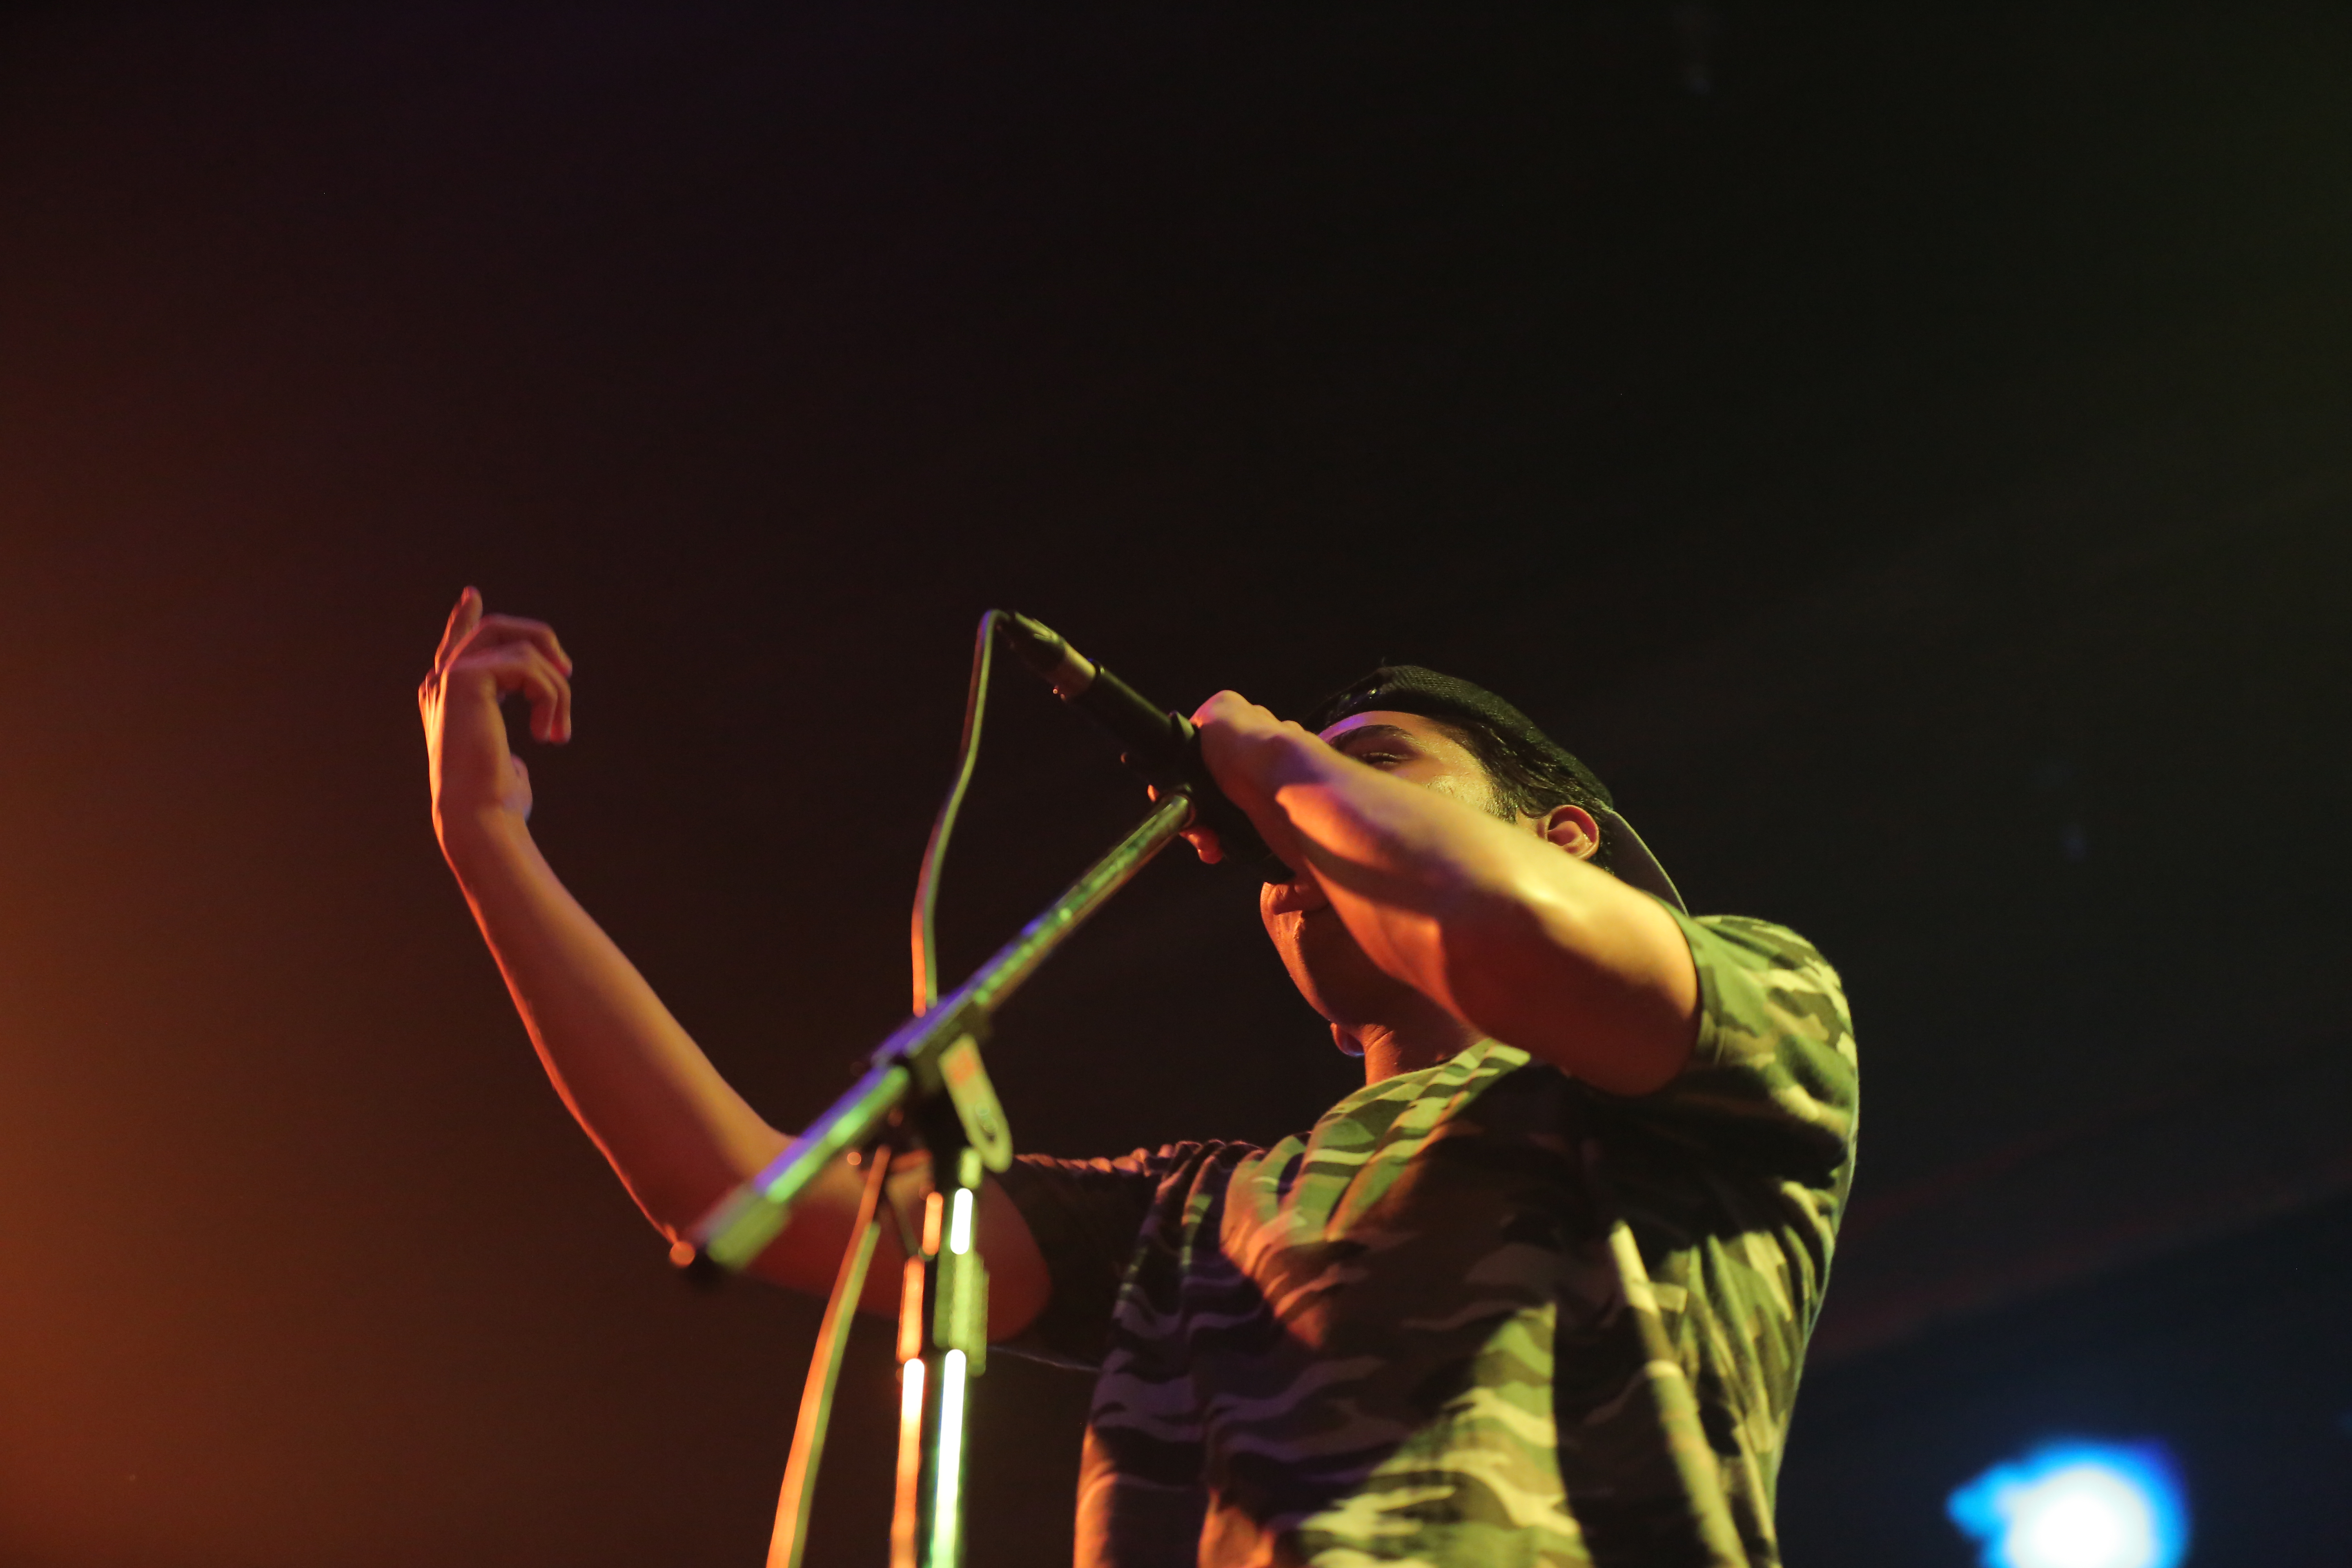 Performing in a concert, banani vista